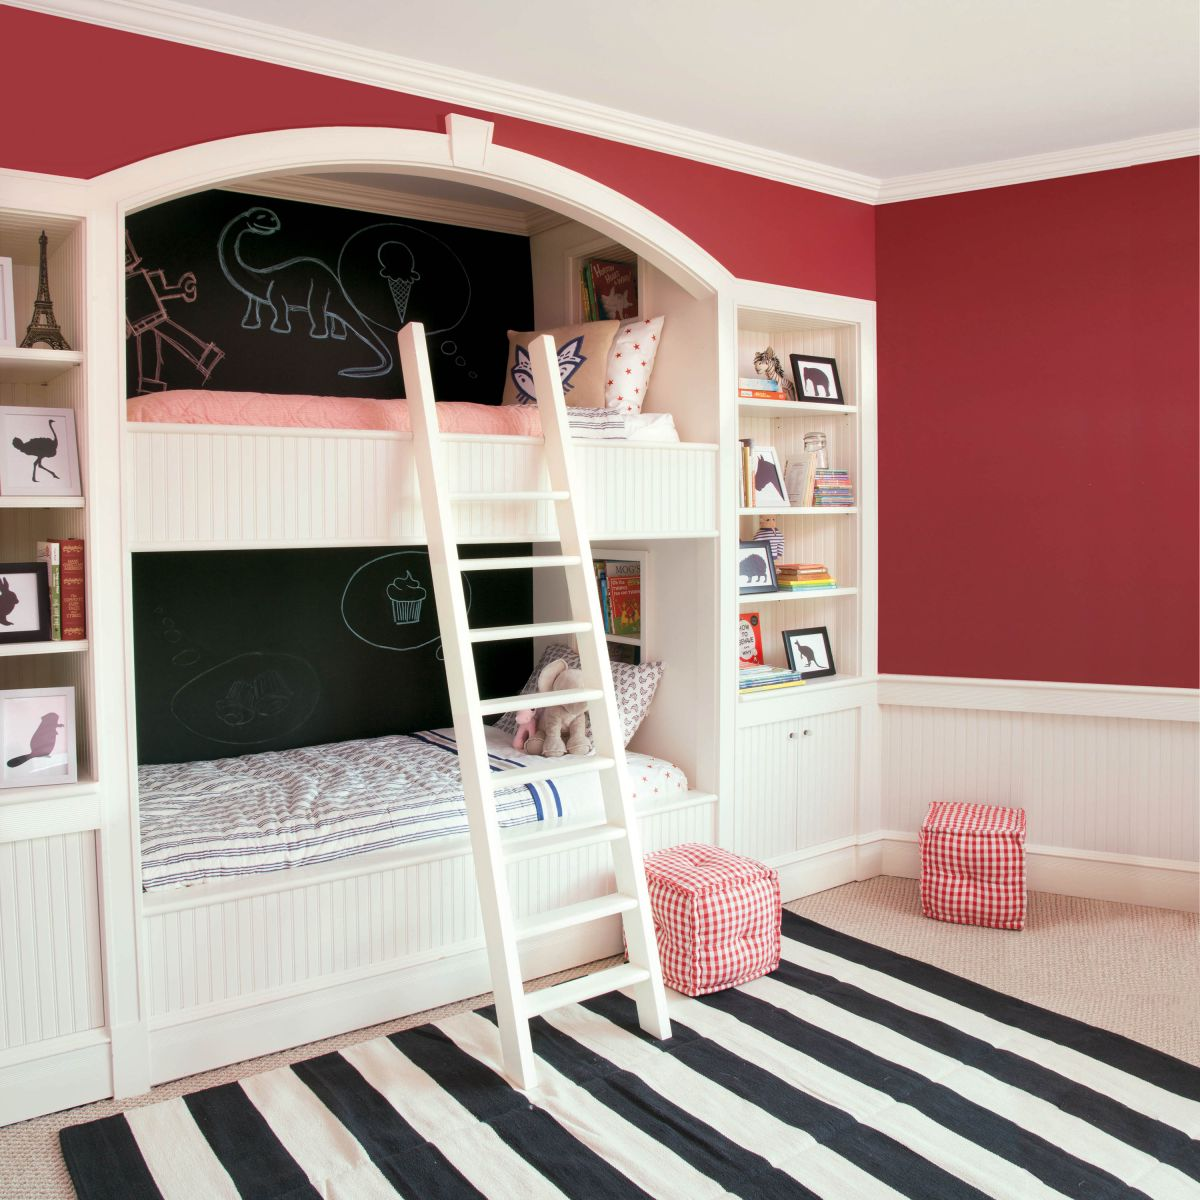 Bedroom storage ideas: 40 clever and stylish solutions